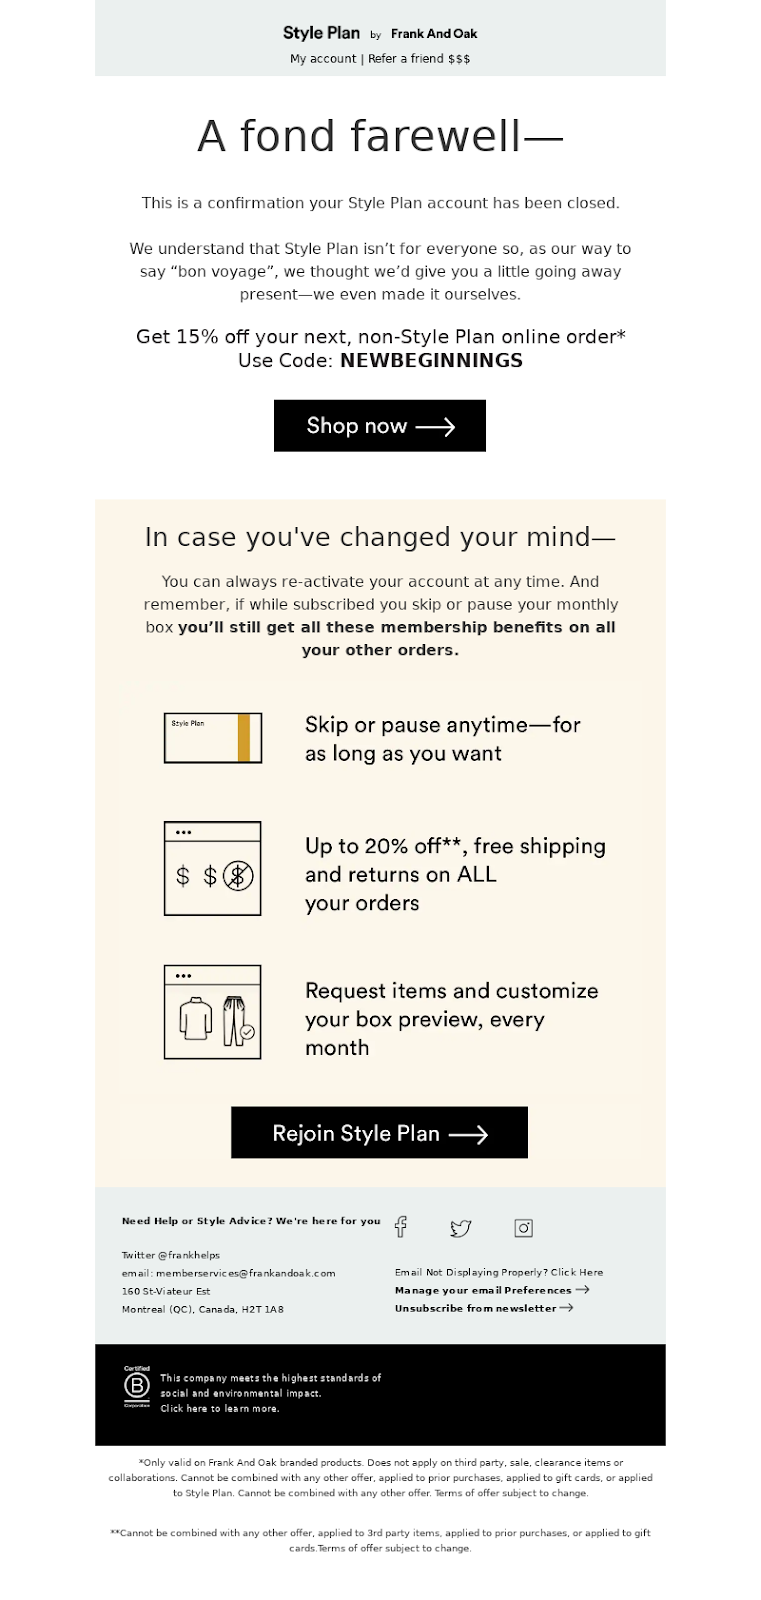 Example of incentive-based transactional emails